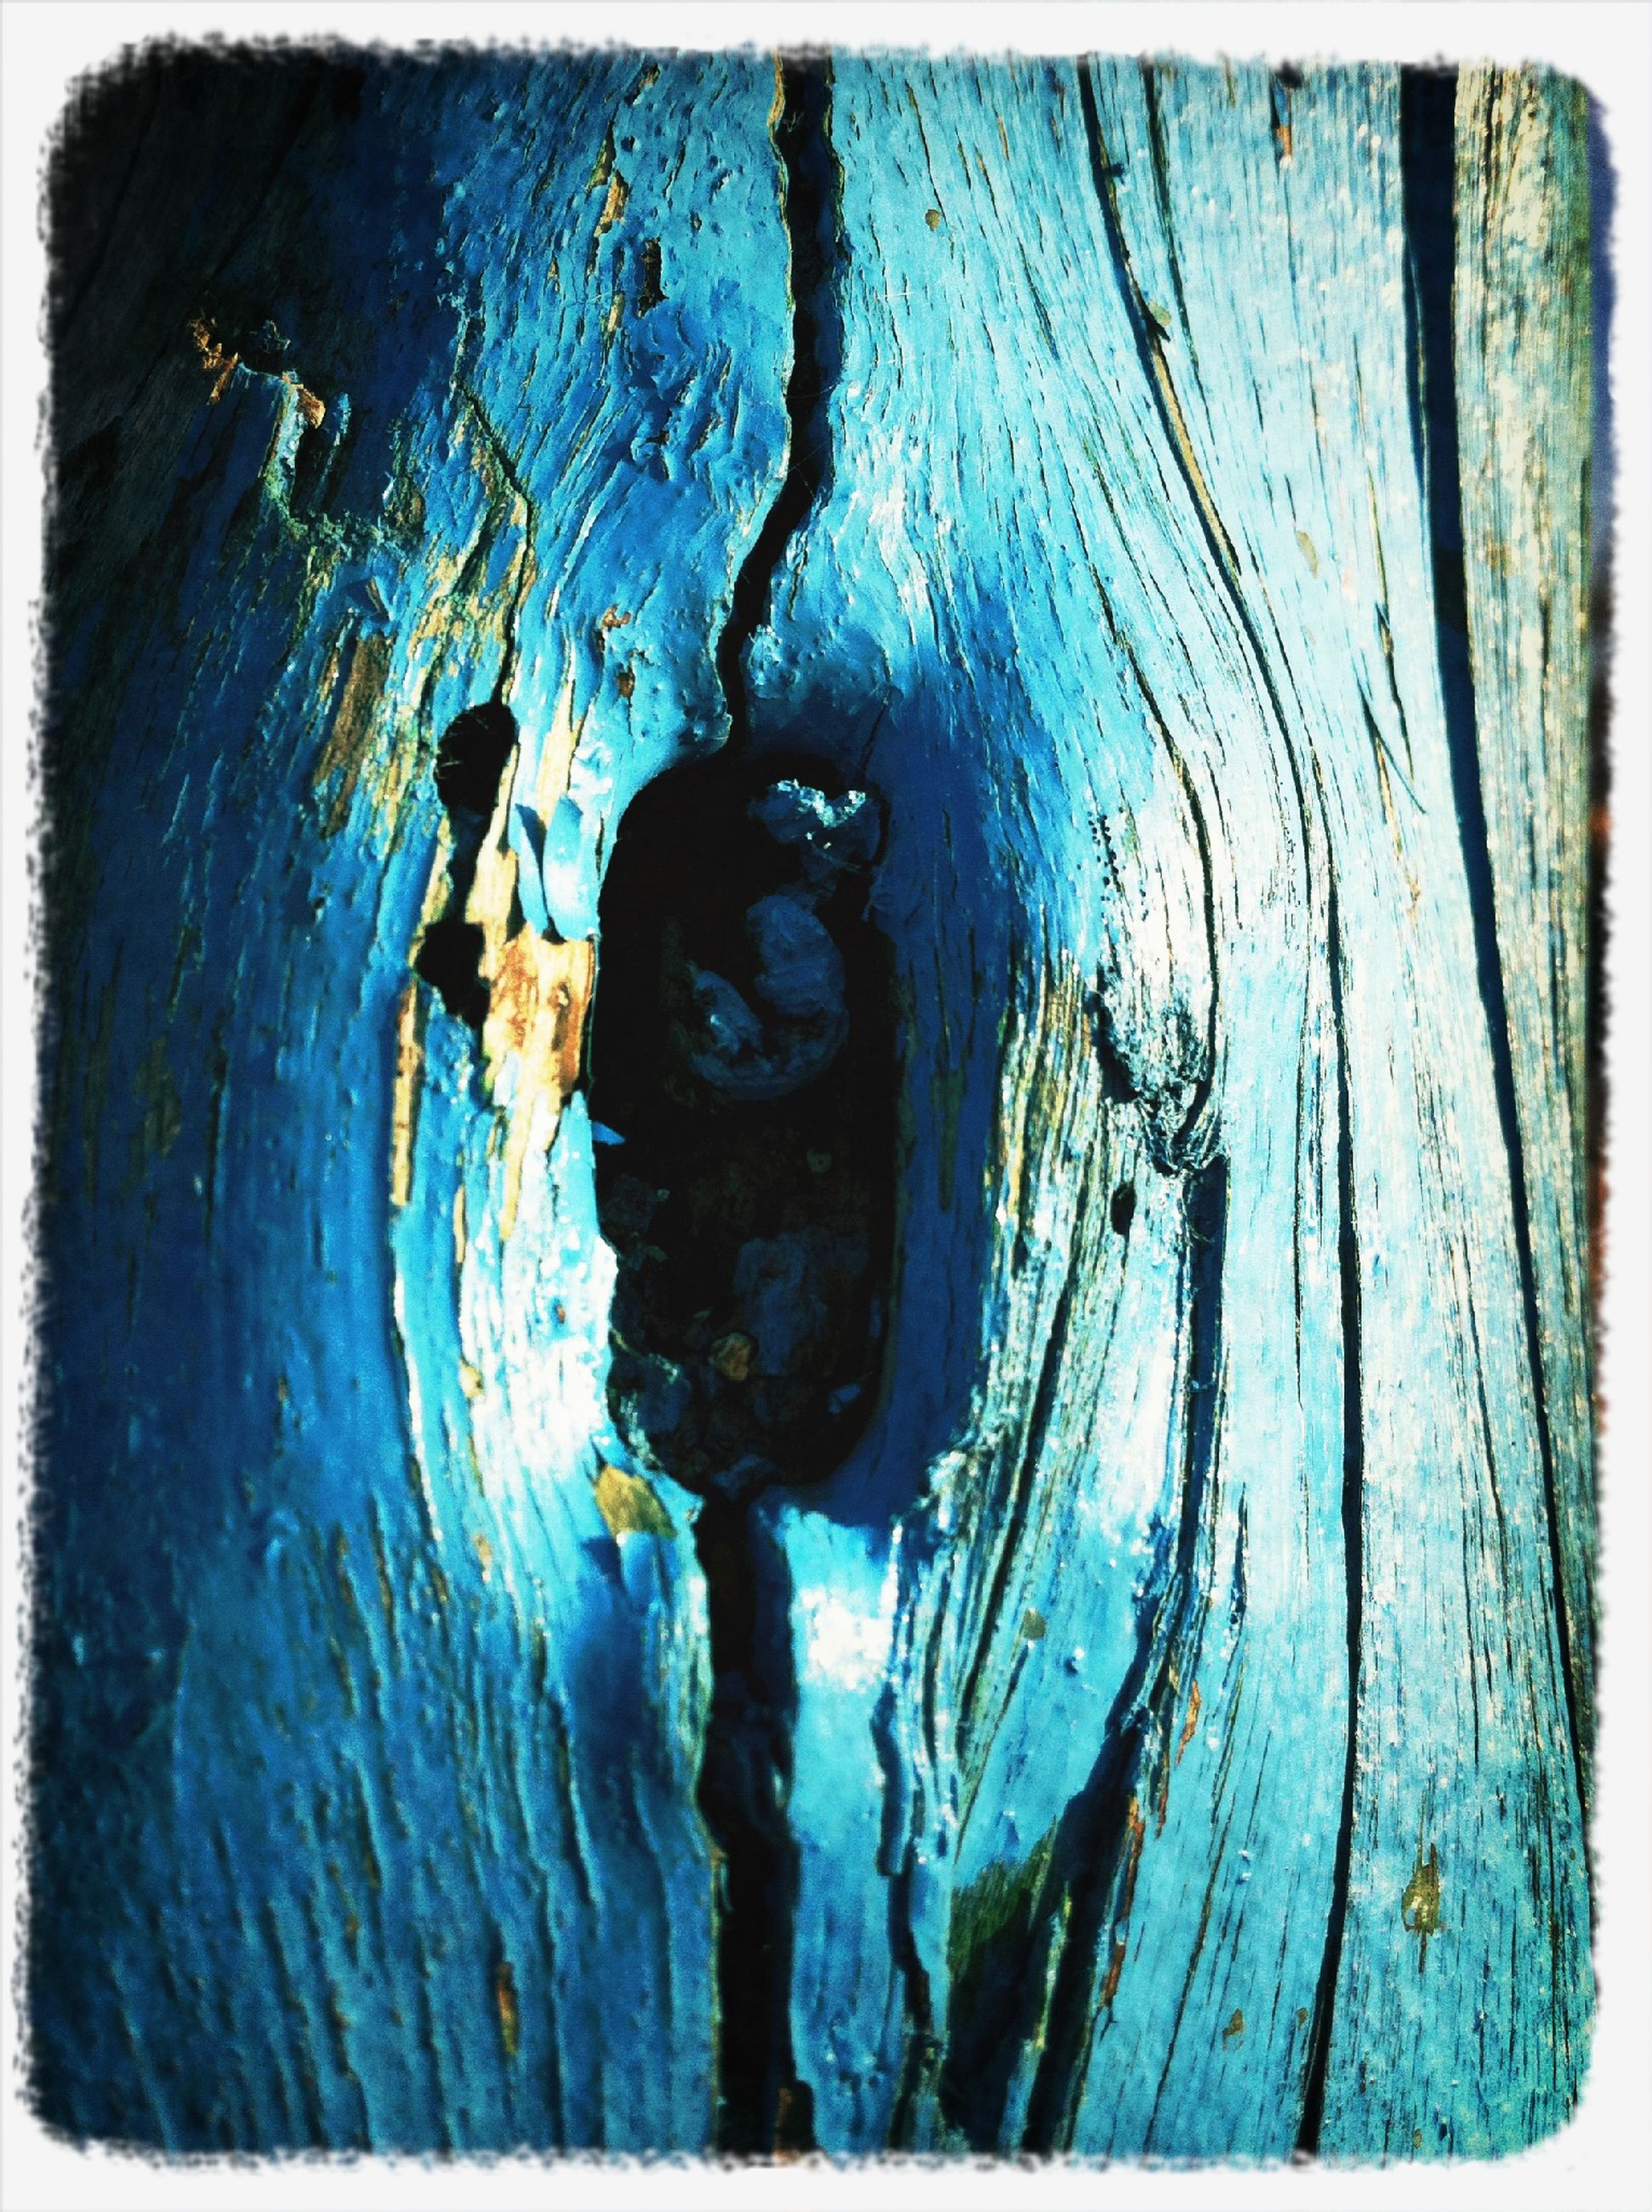 wood - material, transfer print, textured, close-up, auto post production filter, weathered, wooden, wood, full frame, plank, backgrounds, old, tree trunk, blue, outdoors, rusty, rough, no people, day, animal themes